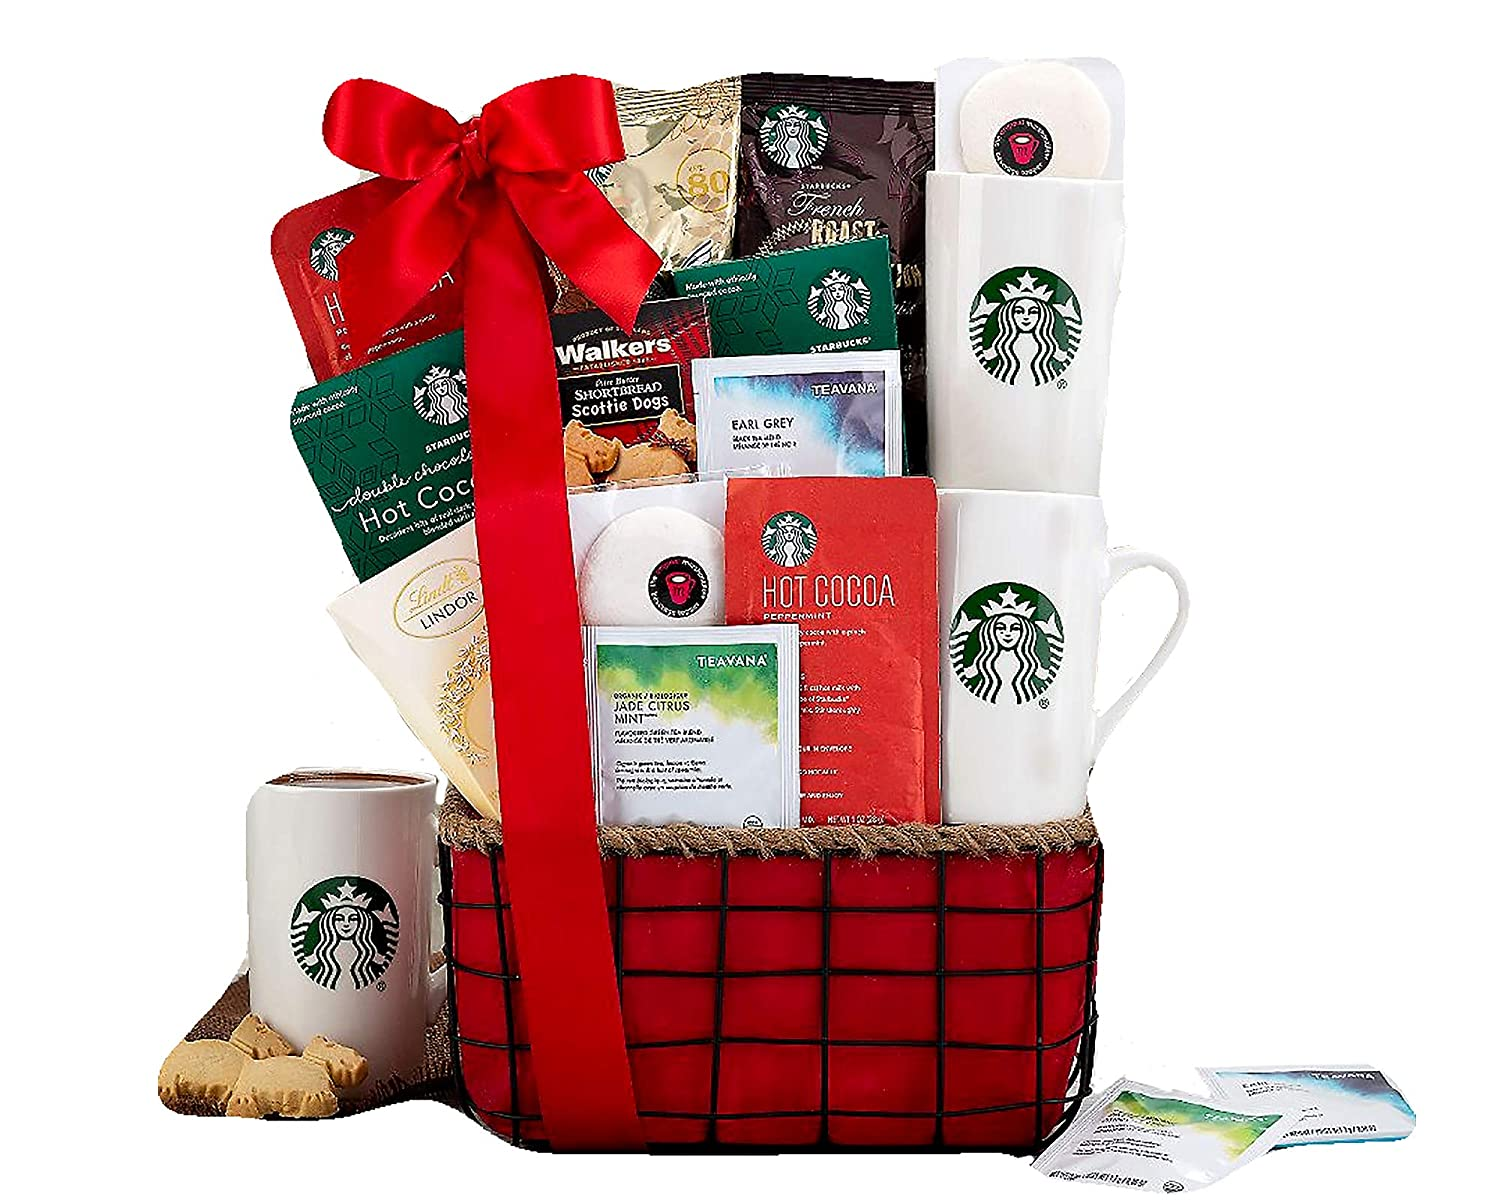 Amazon.com : Starbucks Coffee and Tazo Tea Gift Basket by Wine Country Gift Baskets : Gourmet Gift Items : Grocery & Gourmet Food